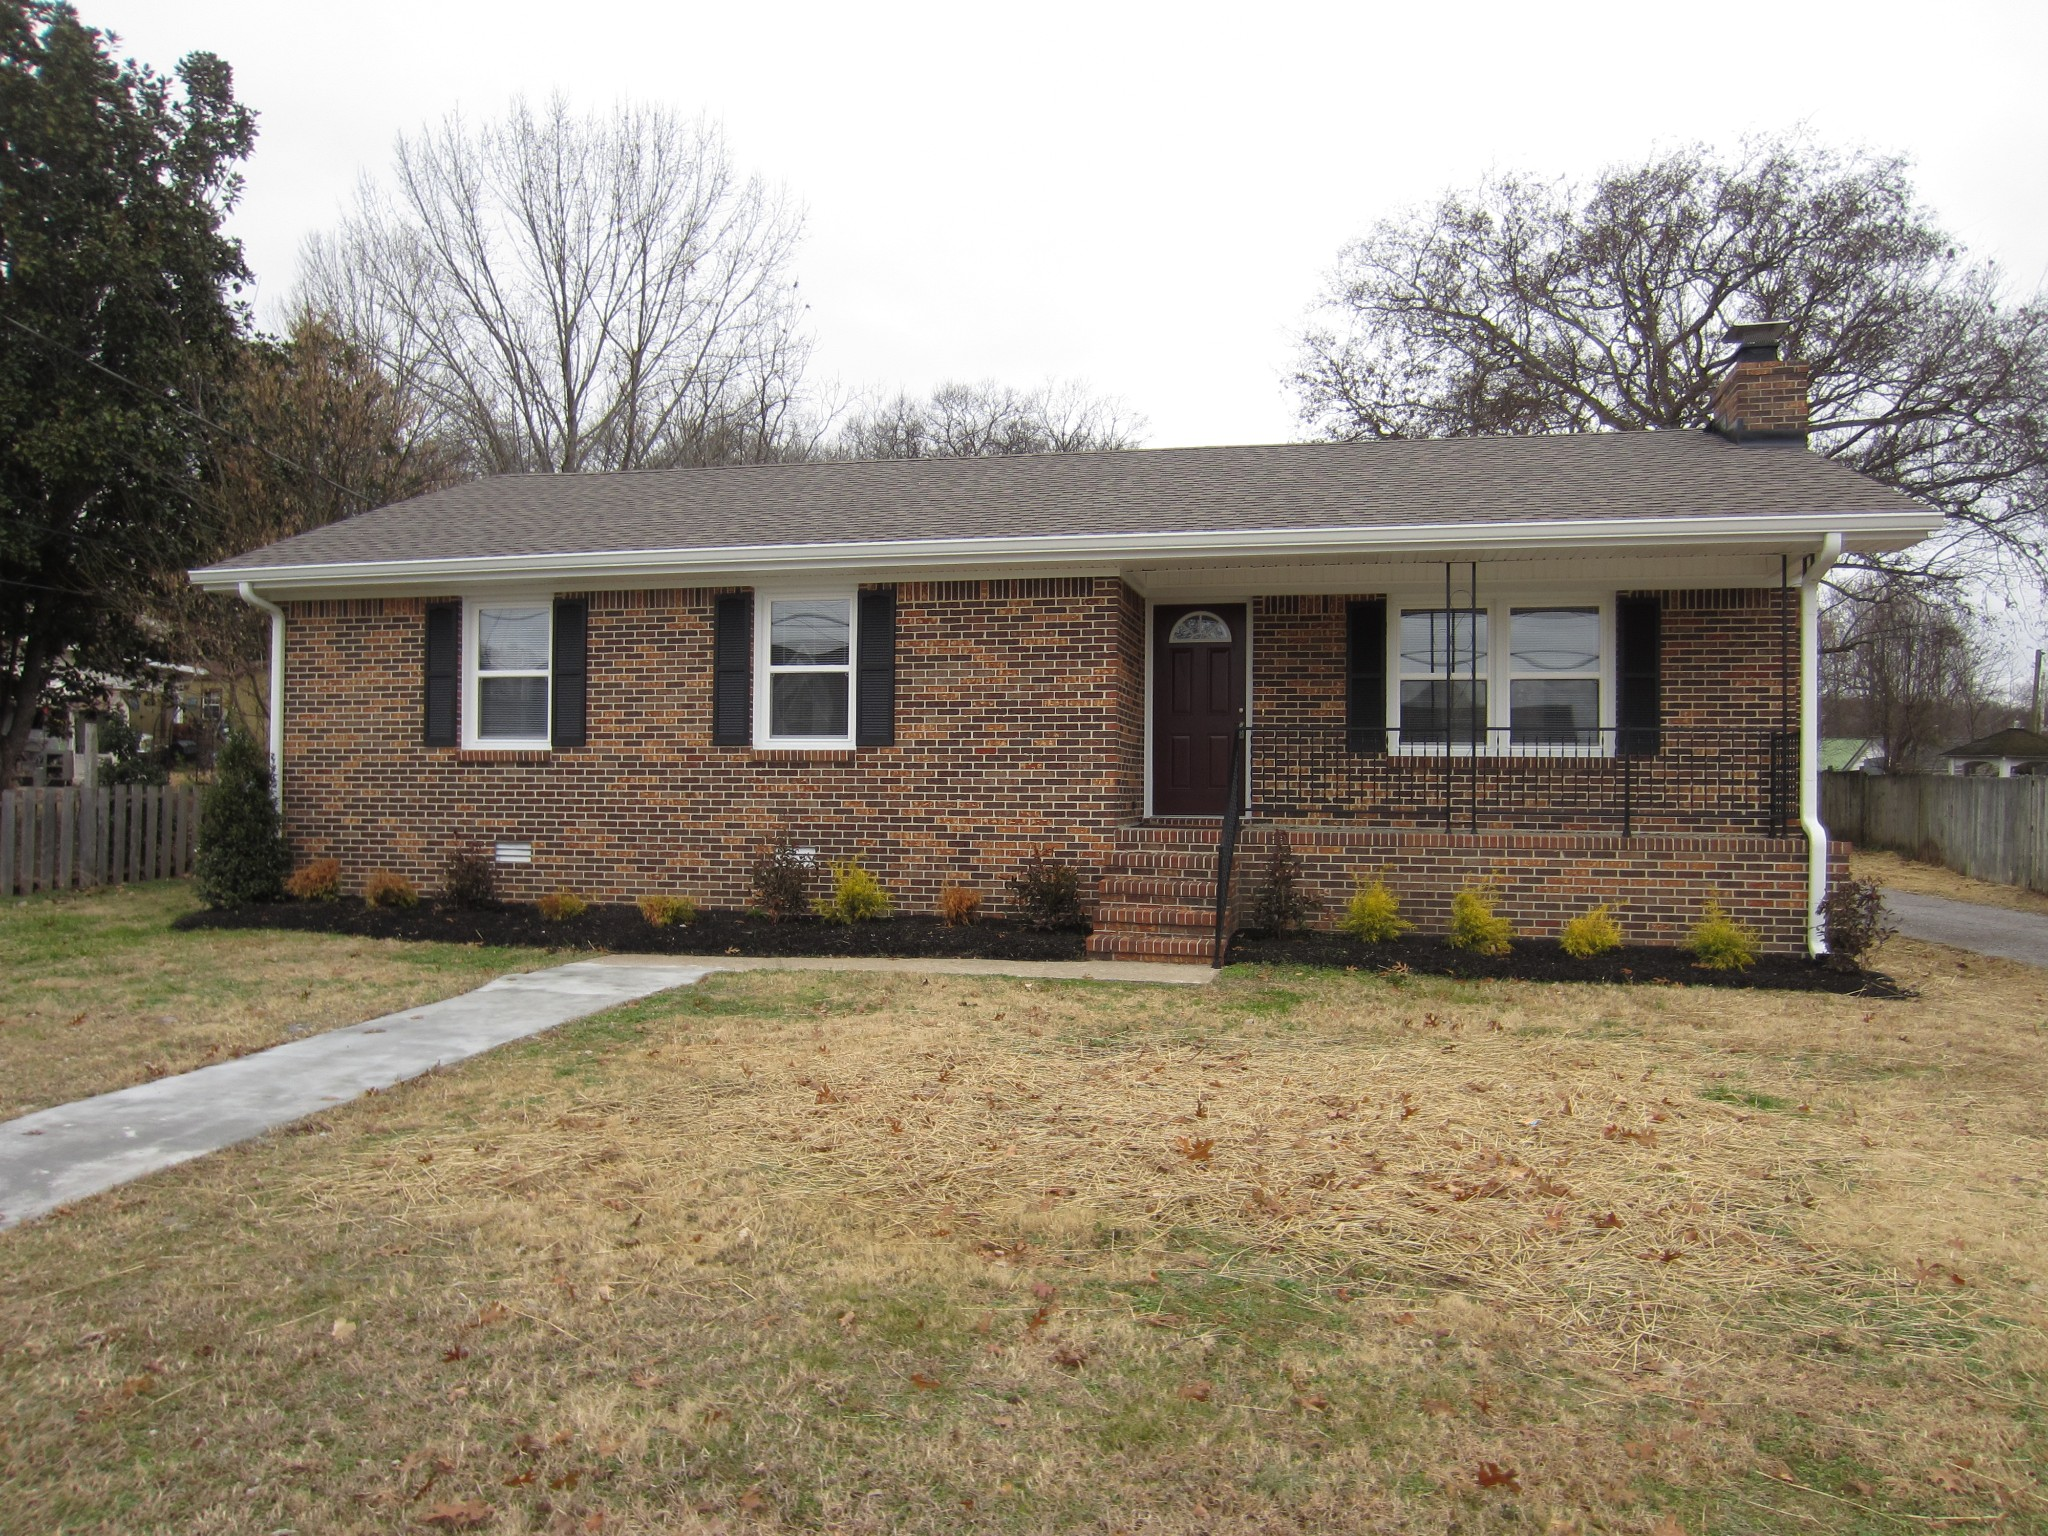 719 W Main St, Watertown, TN 37184 - Watertown, TN real estate listing